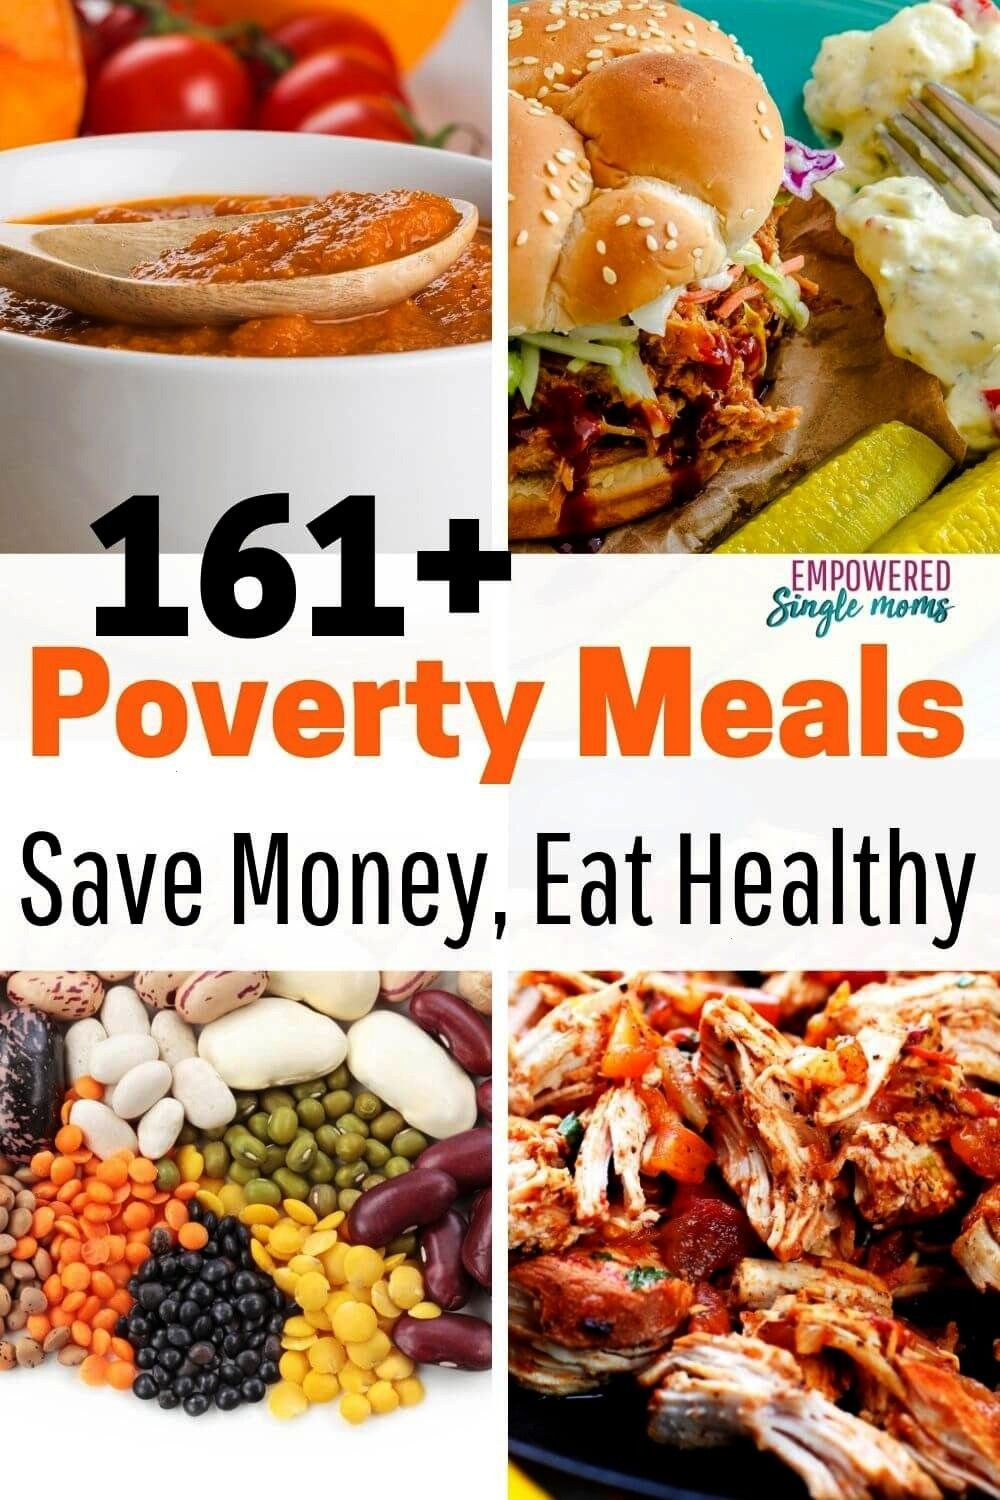 recipes made with poverty food Delicious meals for lunch and dinner Meals to make ahead with your crockpot Yummy meals with lentils black beans and moreBudget recipes mad...